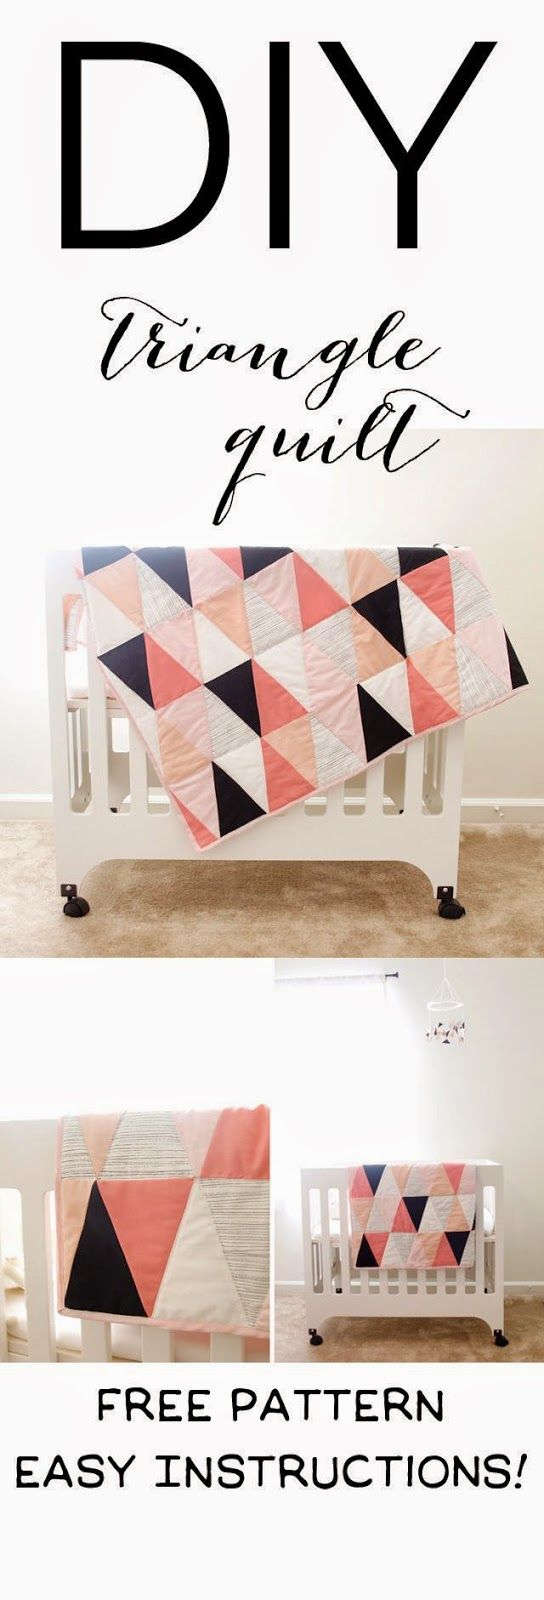 Modern ombre + b/w triangle quilt tutorial + pattern                                                                                                                                                                                 More